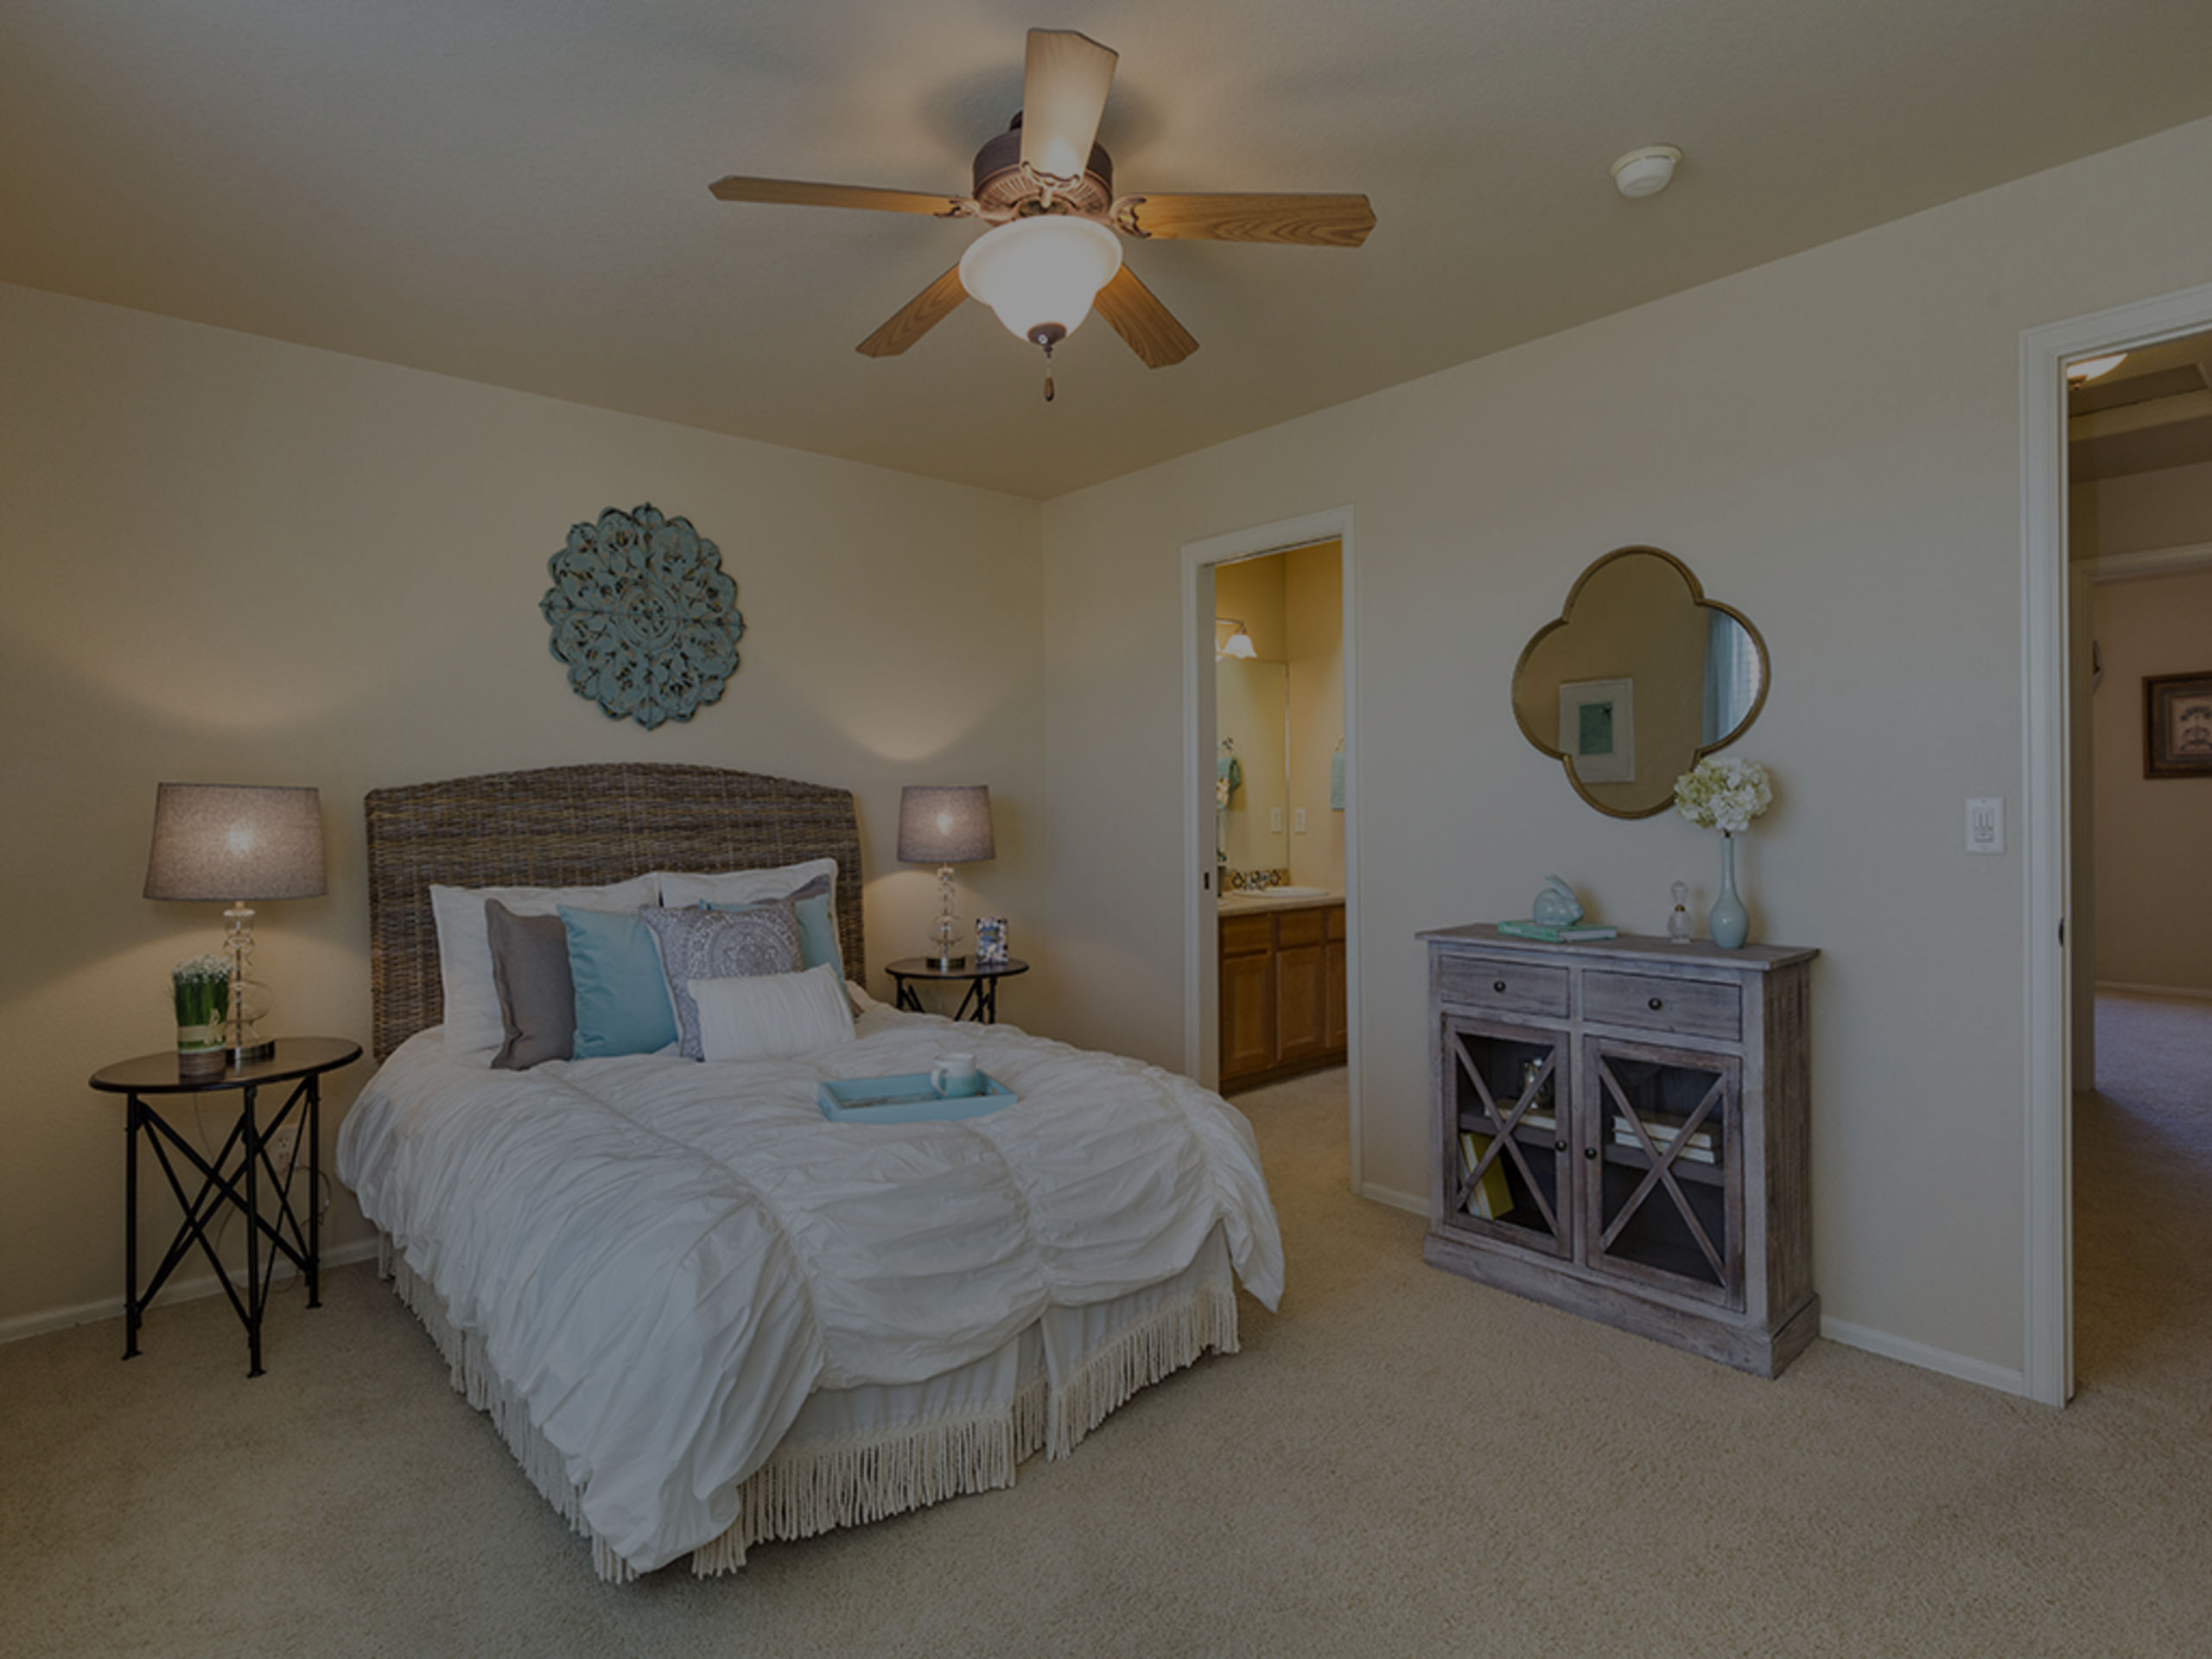 Before & After Video – Townhome Staged to Sell